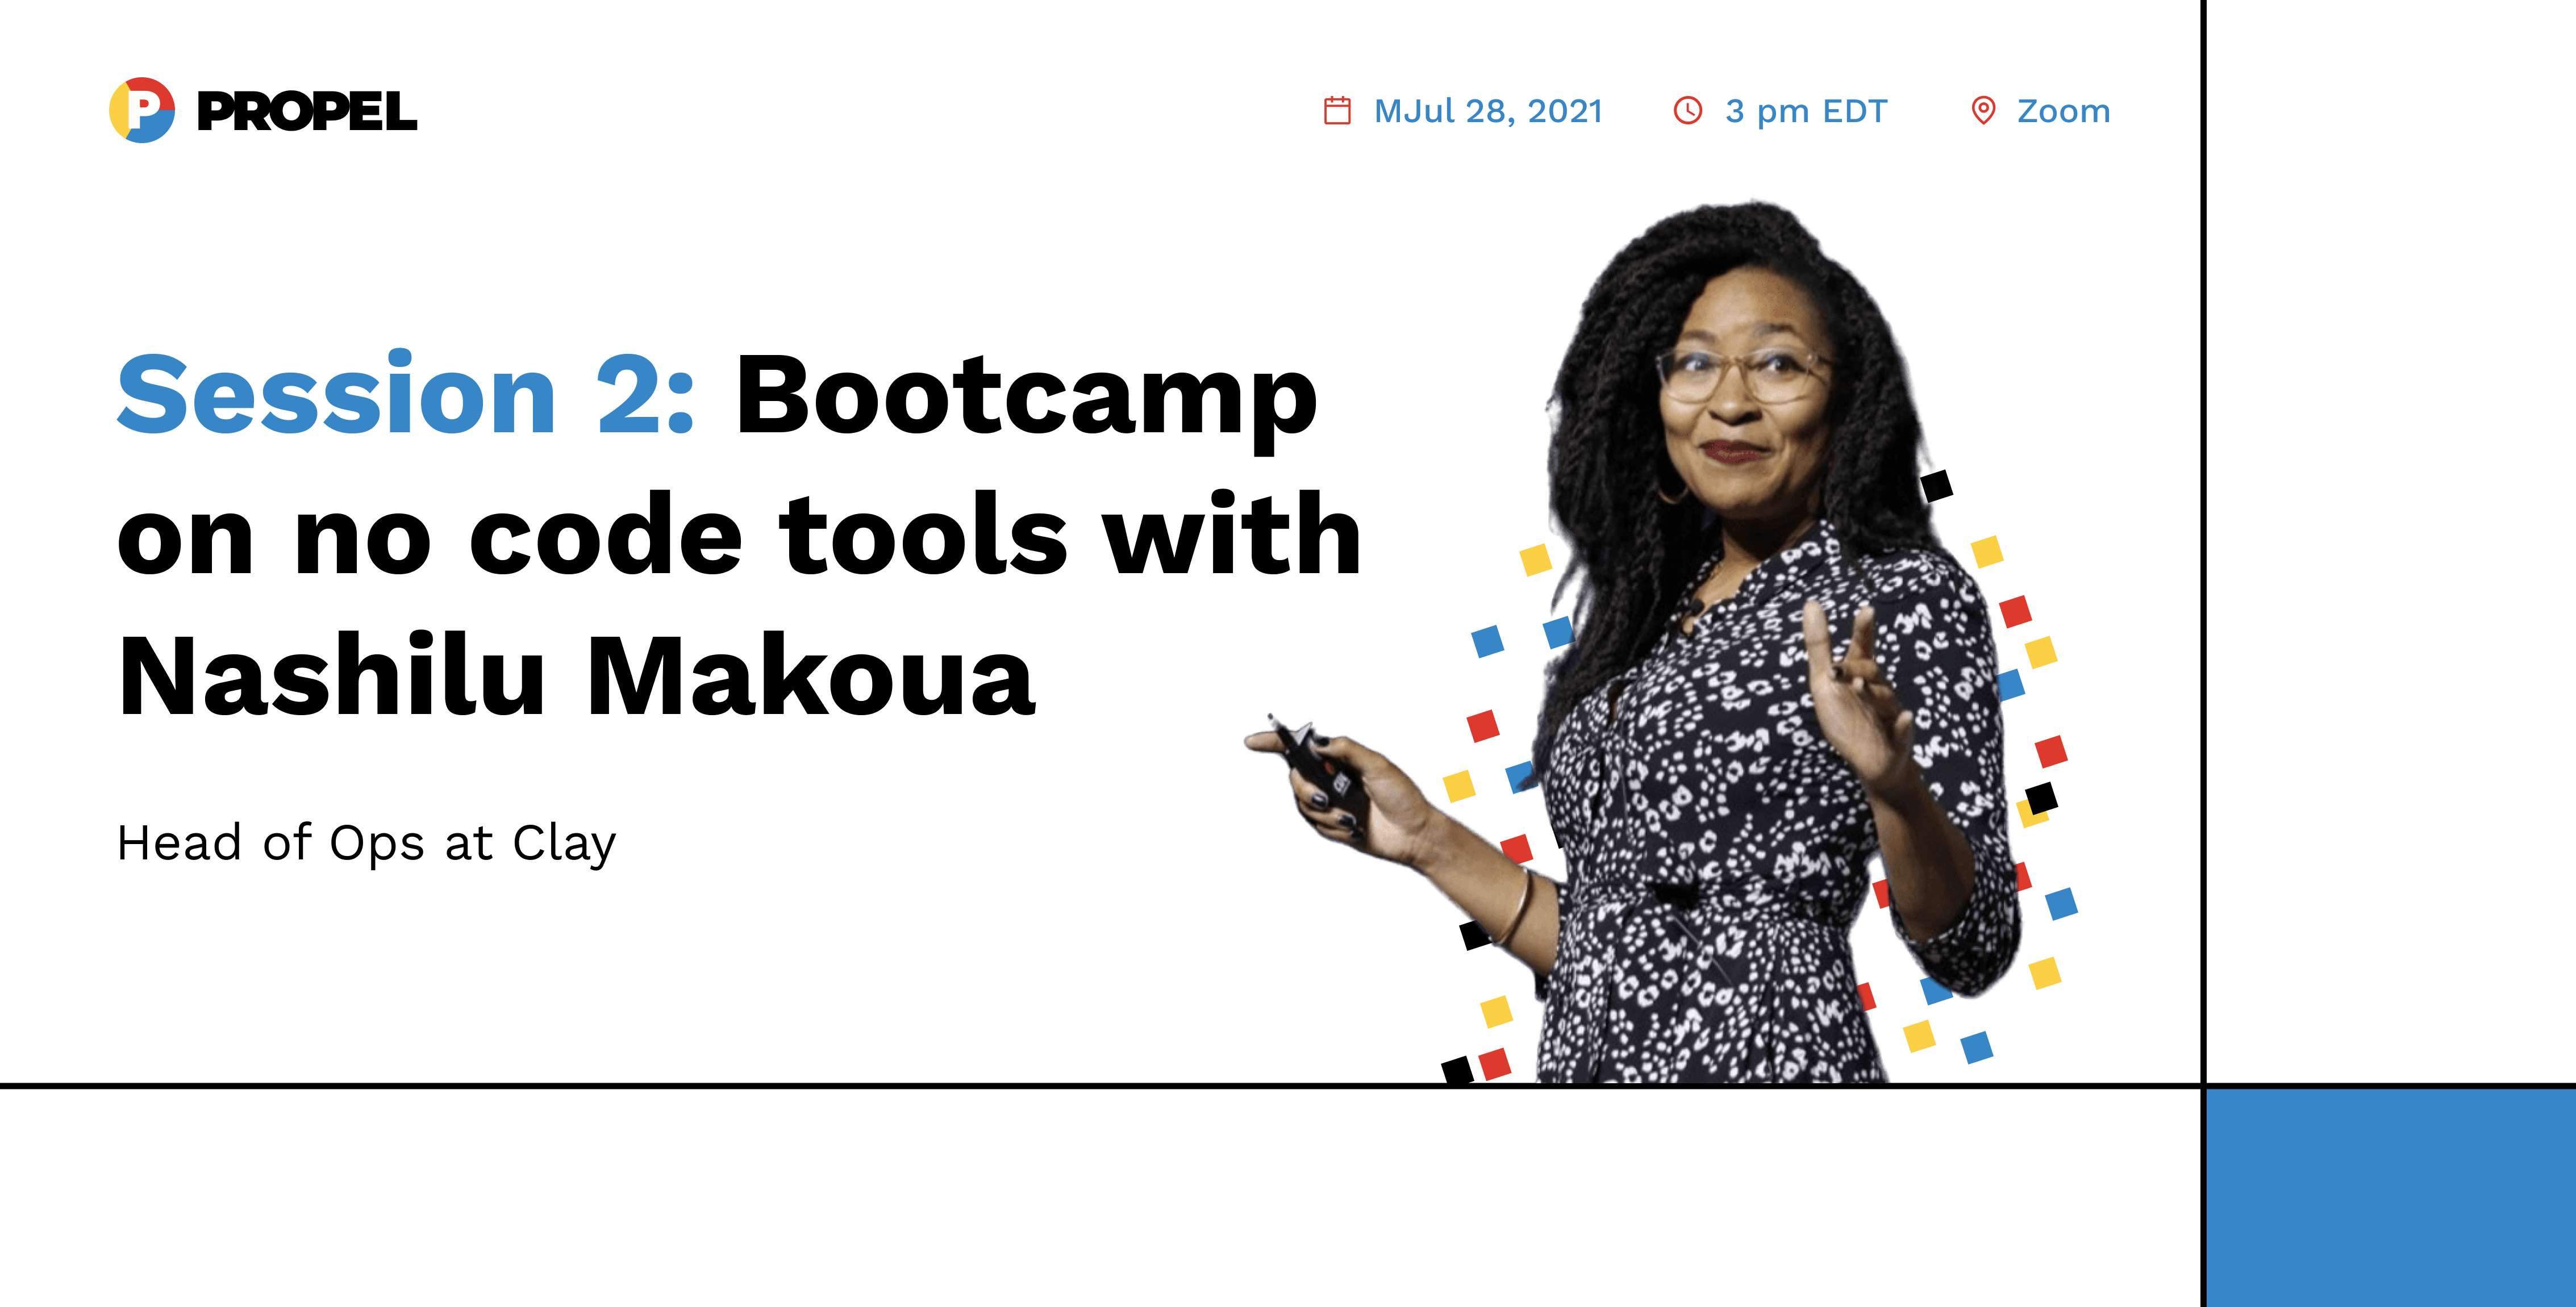 Session 2: Bootcamp on no code tools with Nashilu Makoua, Head of Ops at Clay